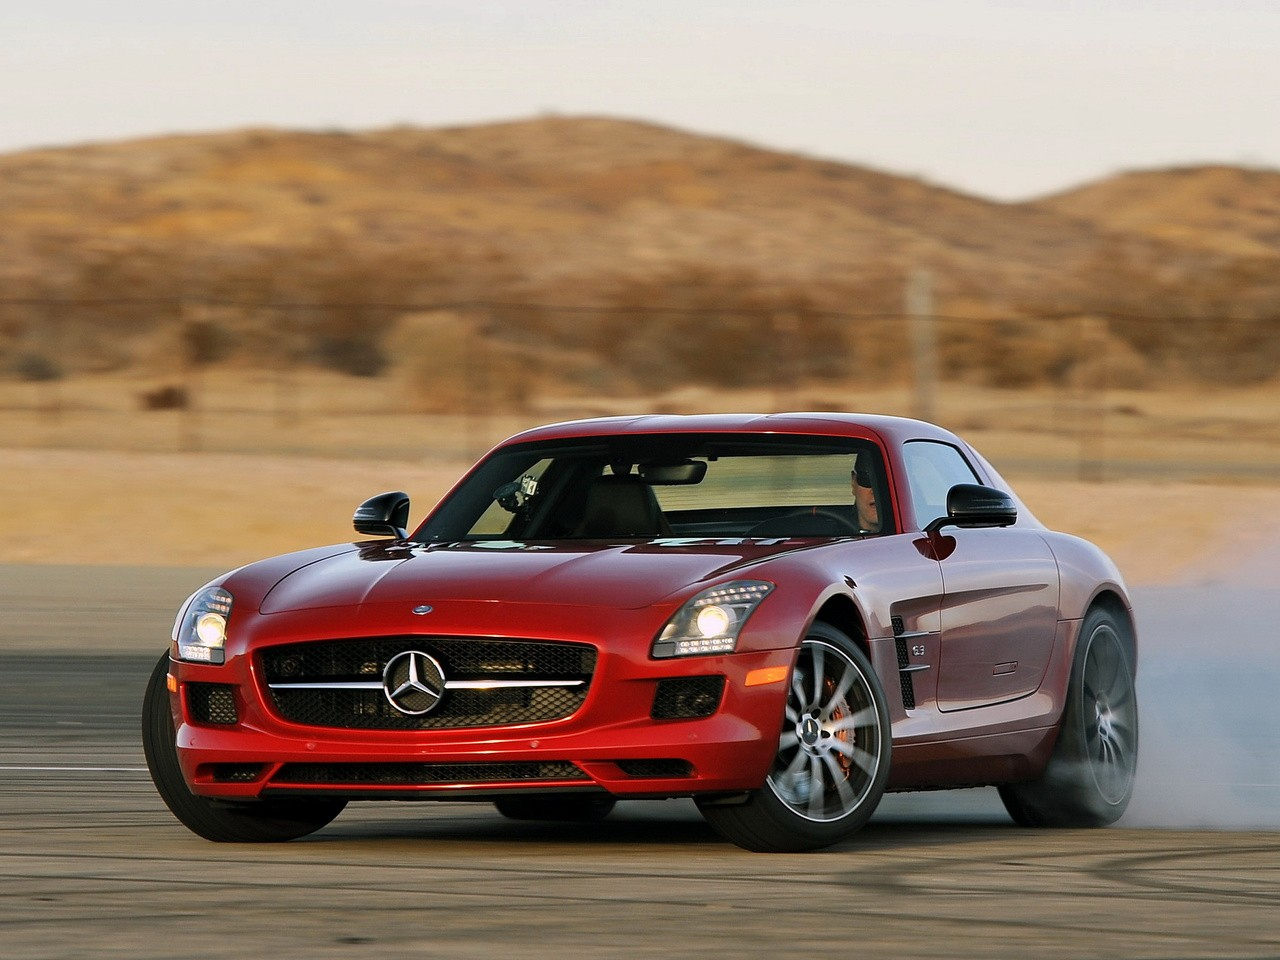 mercedes amg preparing next generation sls it could get hybrid technology autoevolution. Black Bedroom Furniture Sets. Home Design Ideas